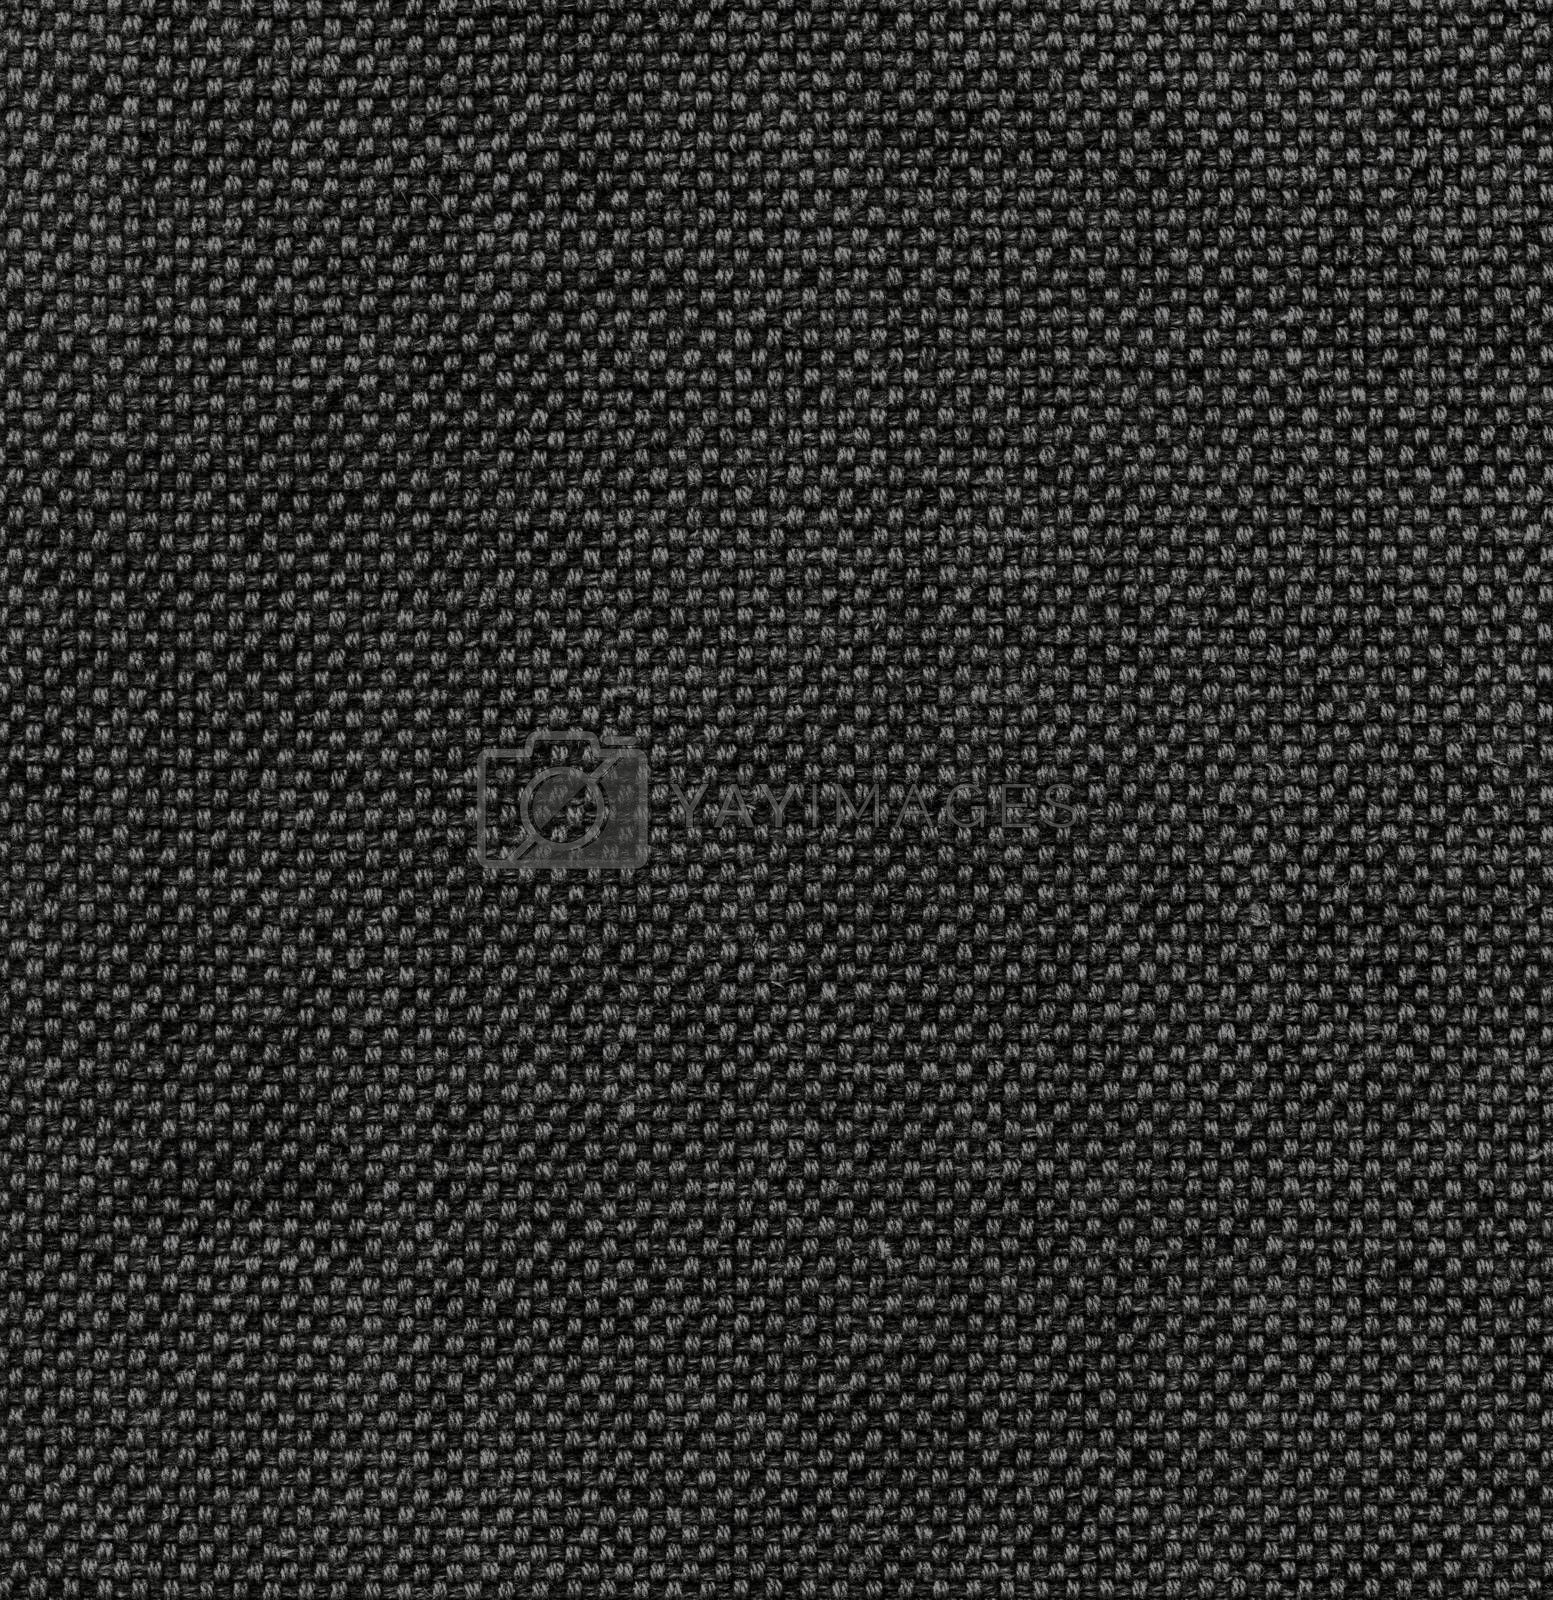 Canvas textile texture.  Dark rough surface background